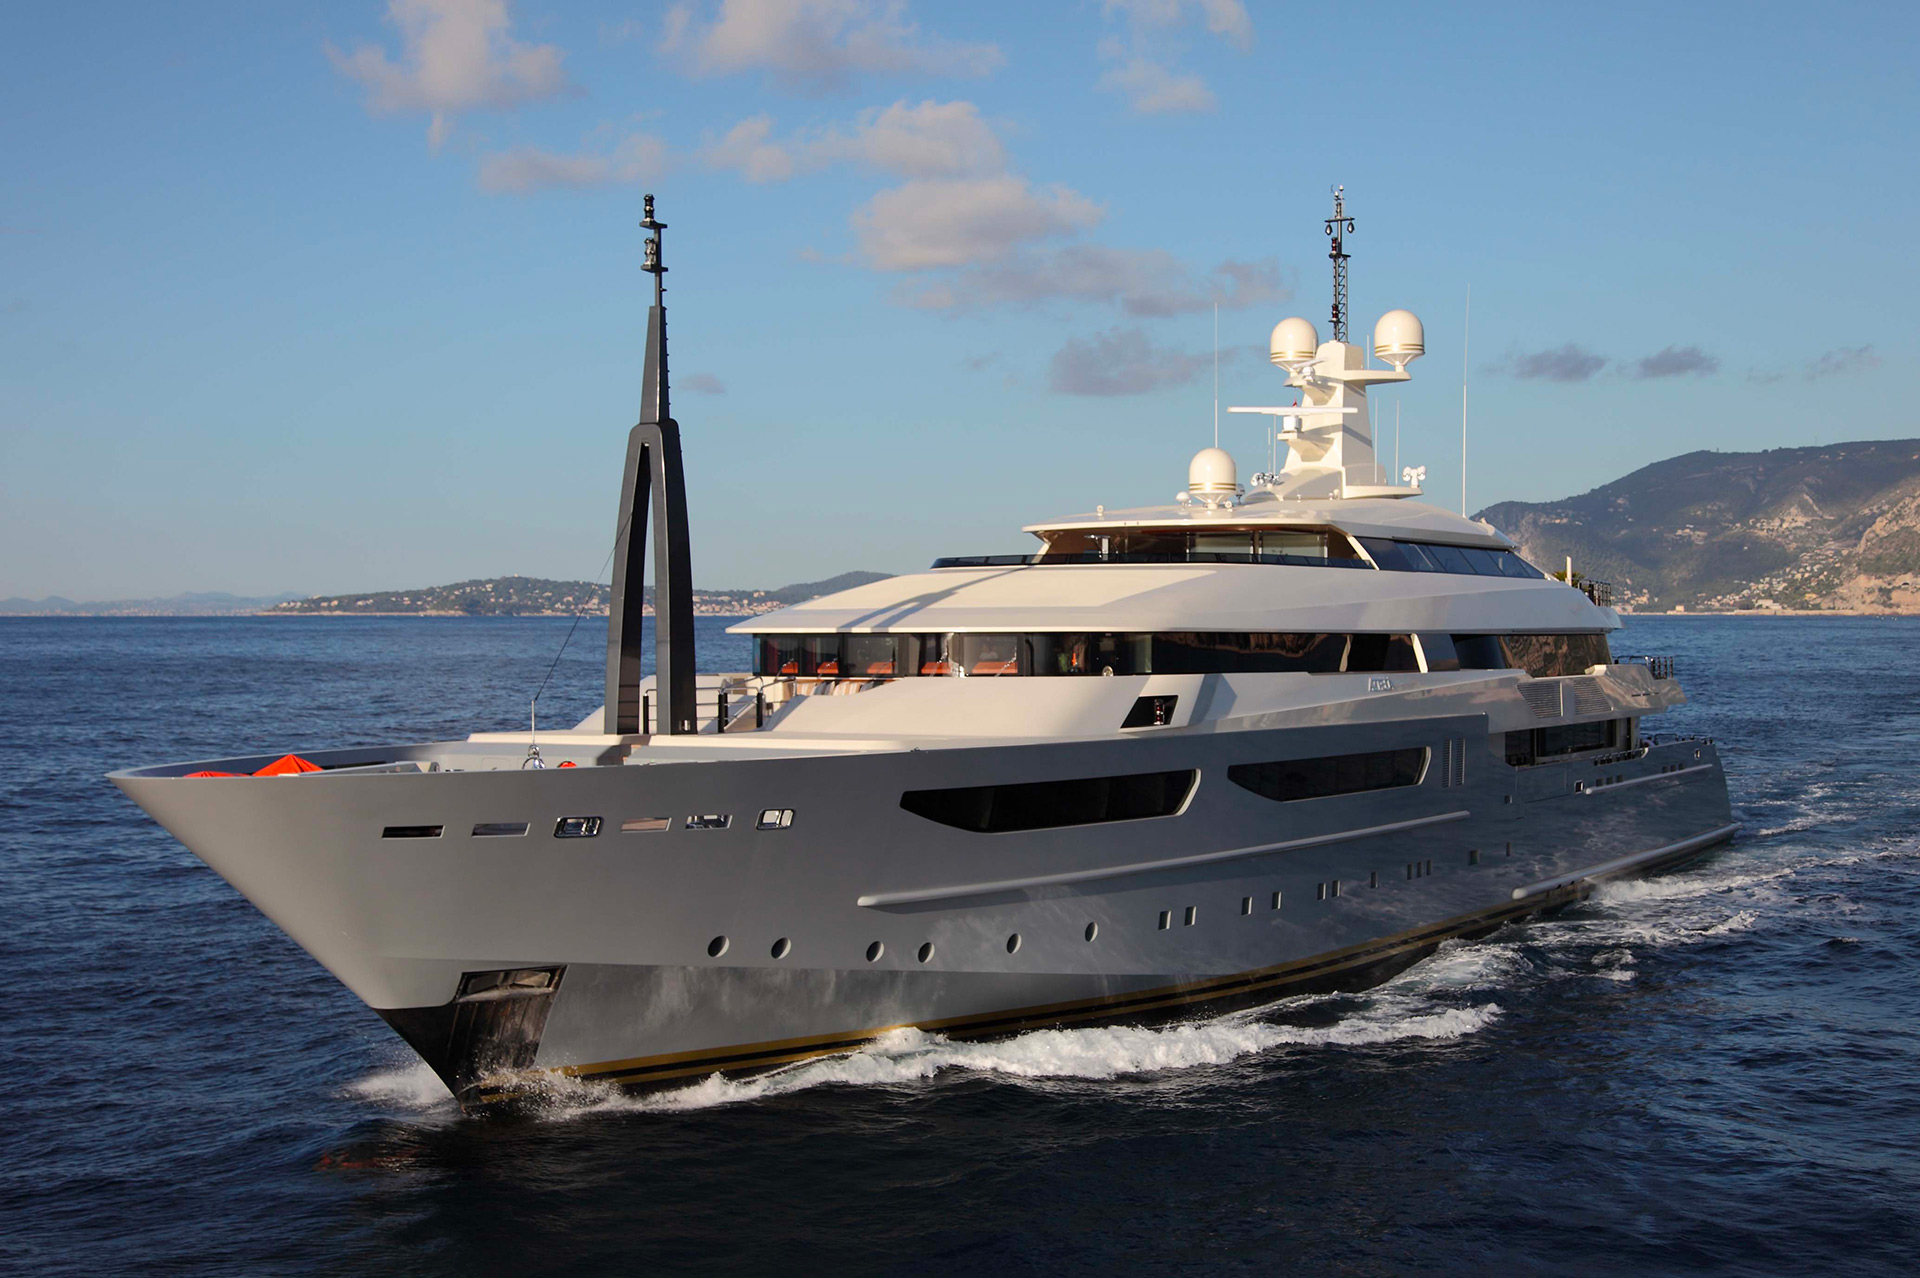 AZTECA Yacht furnished with Promemoria | Promemoria